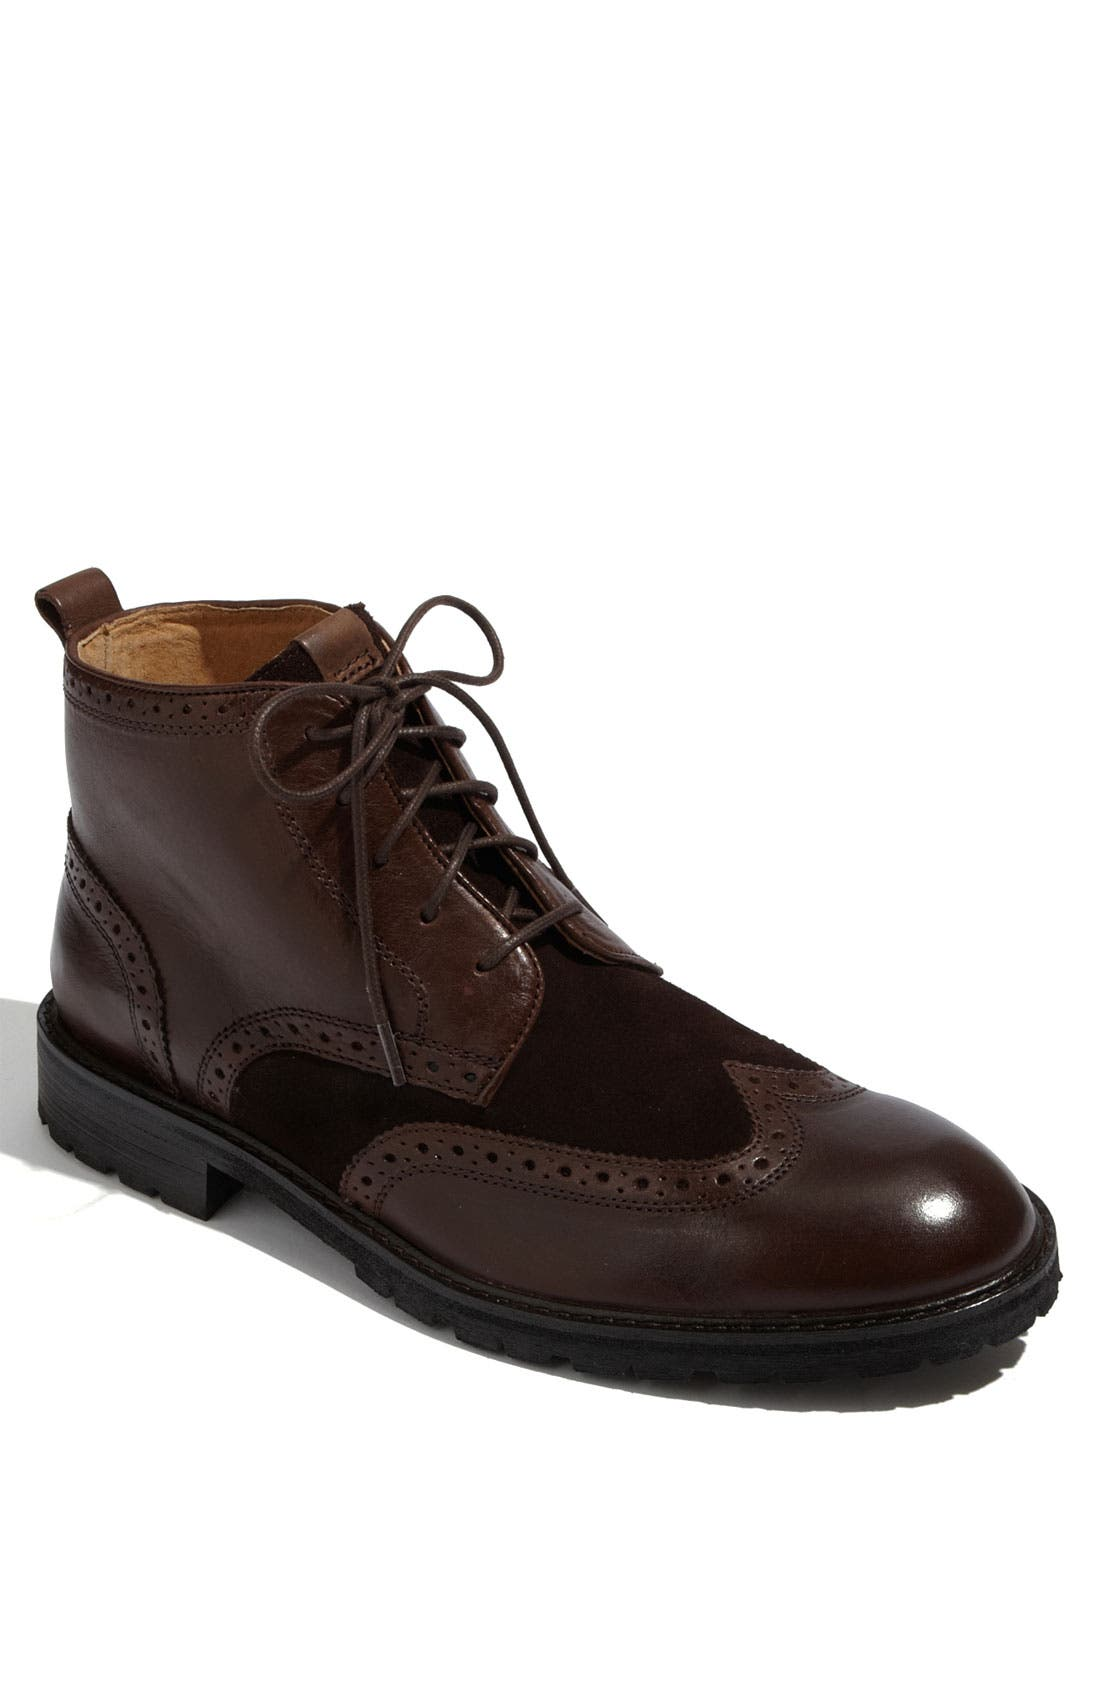 Alternate Image 1 Selected - Florsheim 'Gaffney' Wingtip Boot (Online Only)